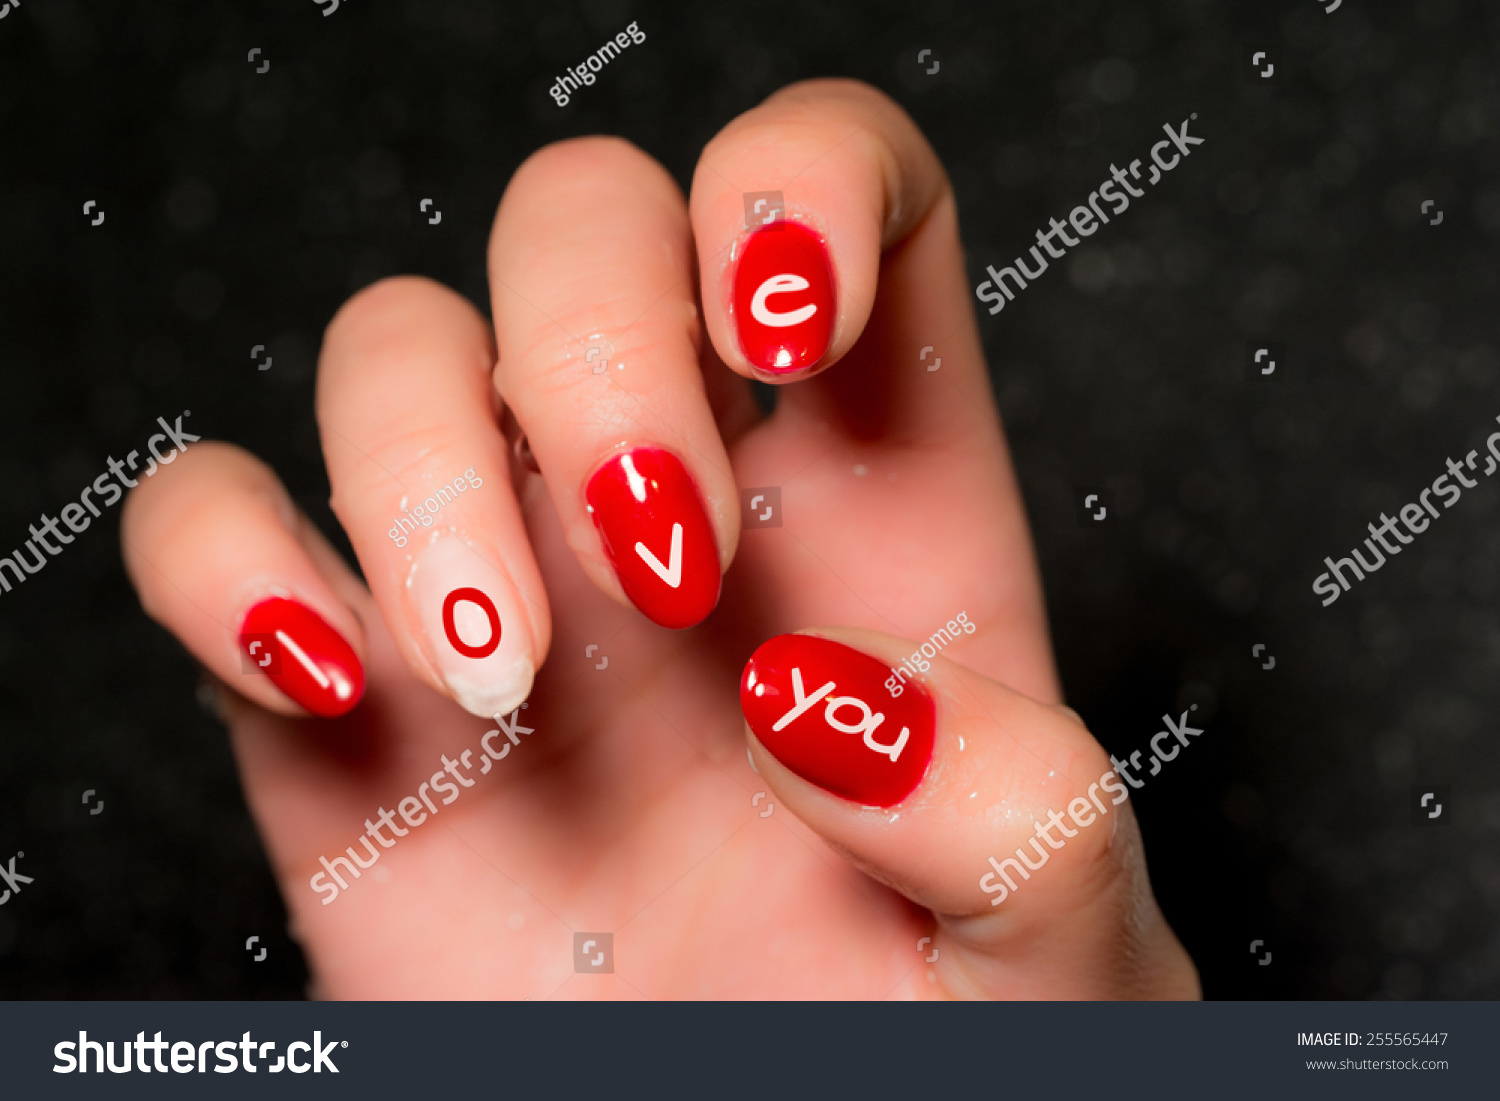 Manicure Nail Art Love Message Stock Photo (Edit Now) 255565447 ...